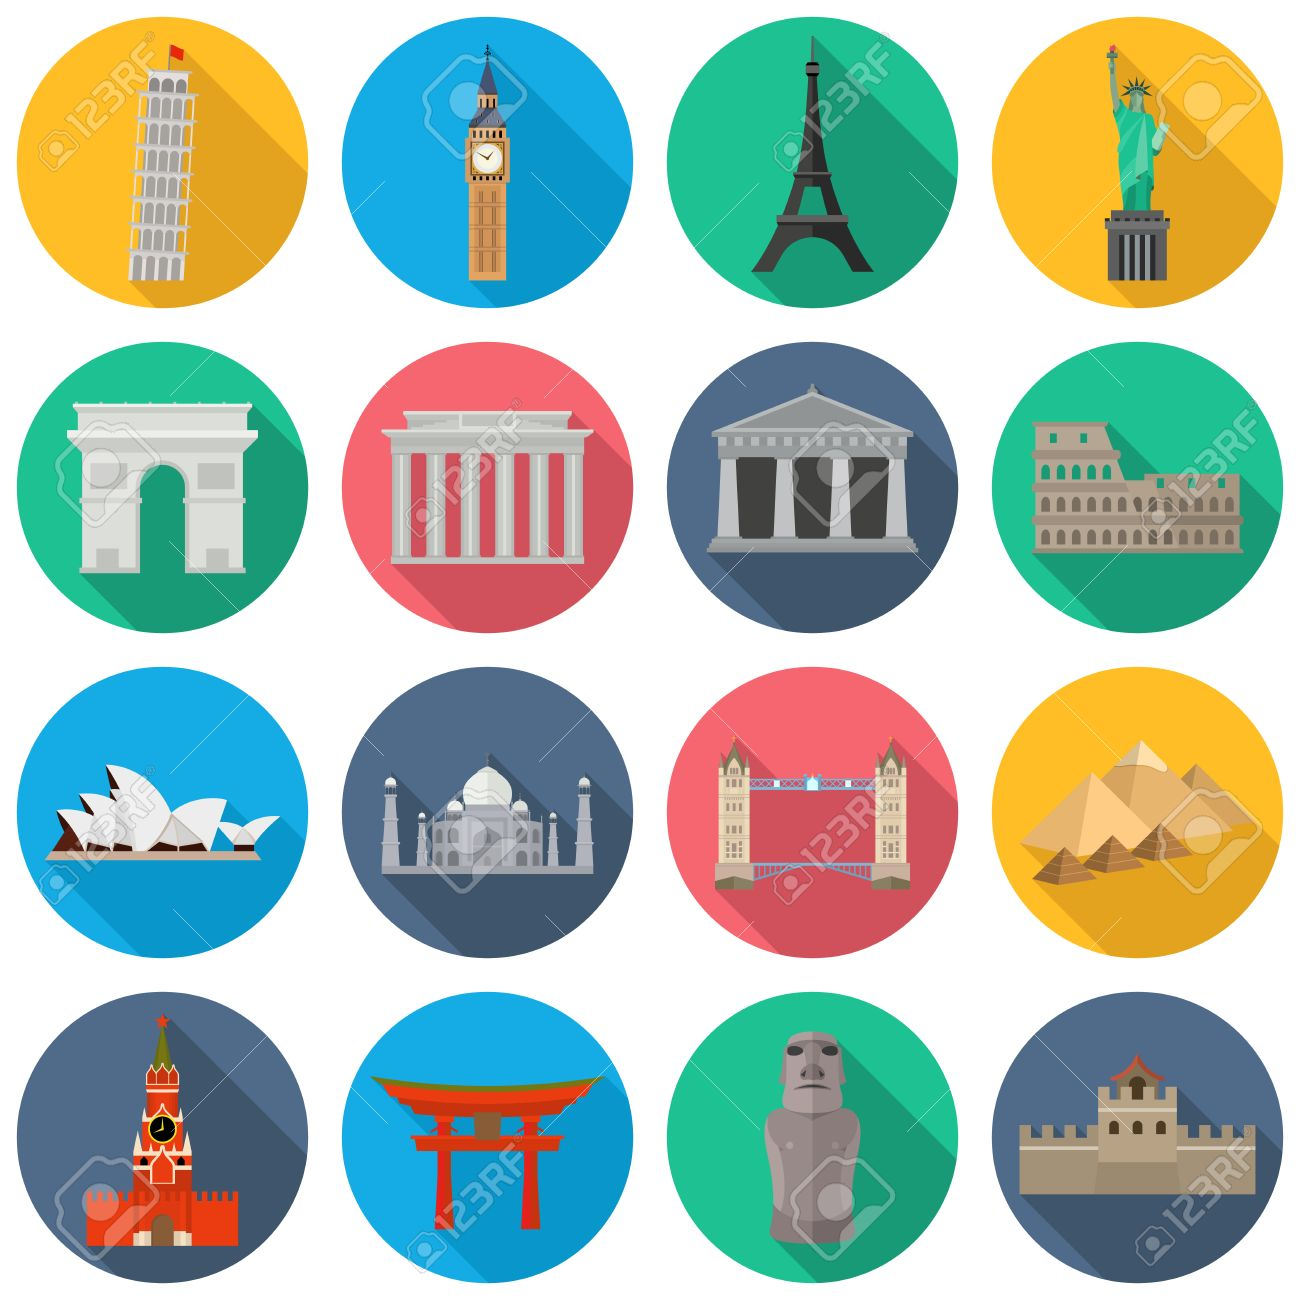 Vector icons of the worlds monuments. Leaning Tower of Pisa, Big Ben, Eiffel Tower, Statue liberty, Triumphal Arch, Brandenburg Gate, Parthenon, Colosseum, Opera House, Taj Mahal, Tower Bridge, Pyramids of Giza, Acropolis, Sea Gate, Moai, Great Wall - 58783412